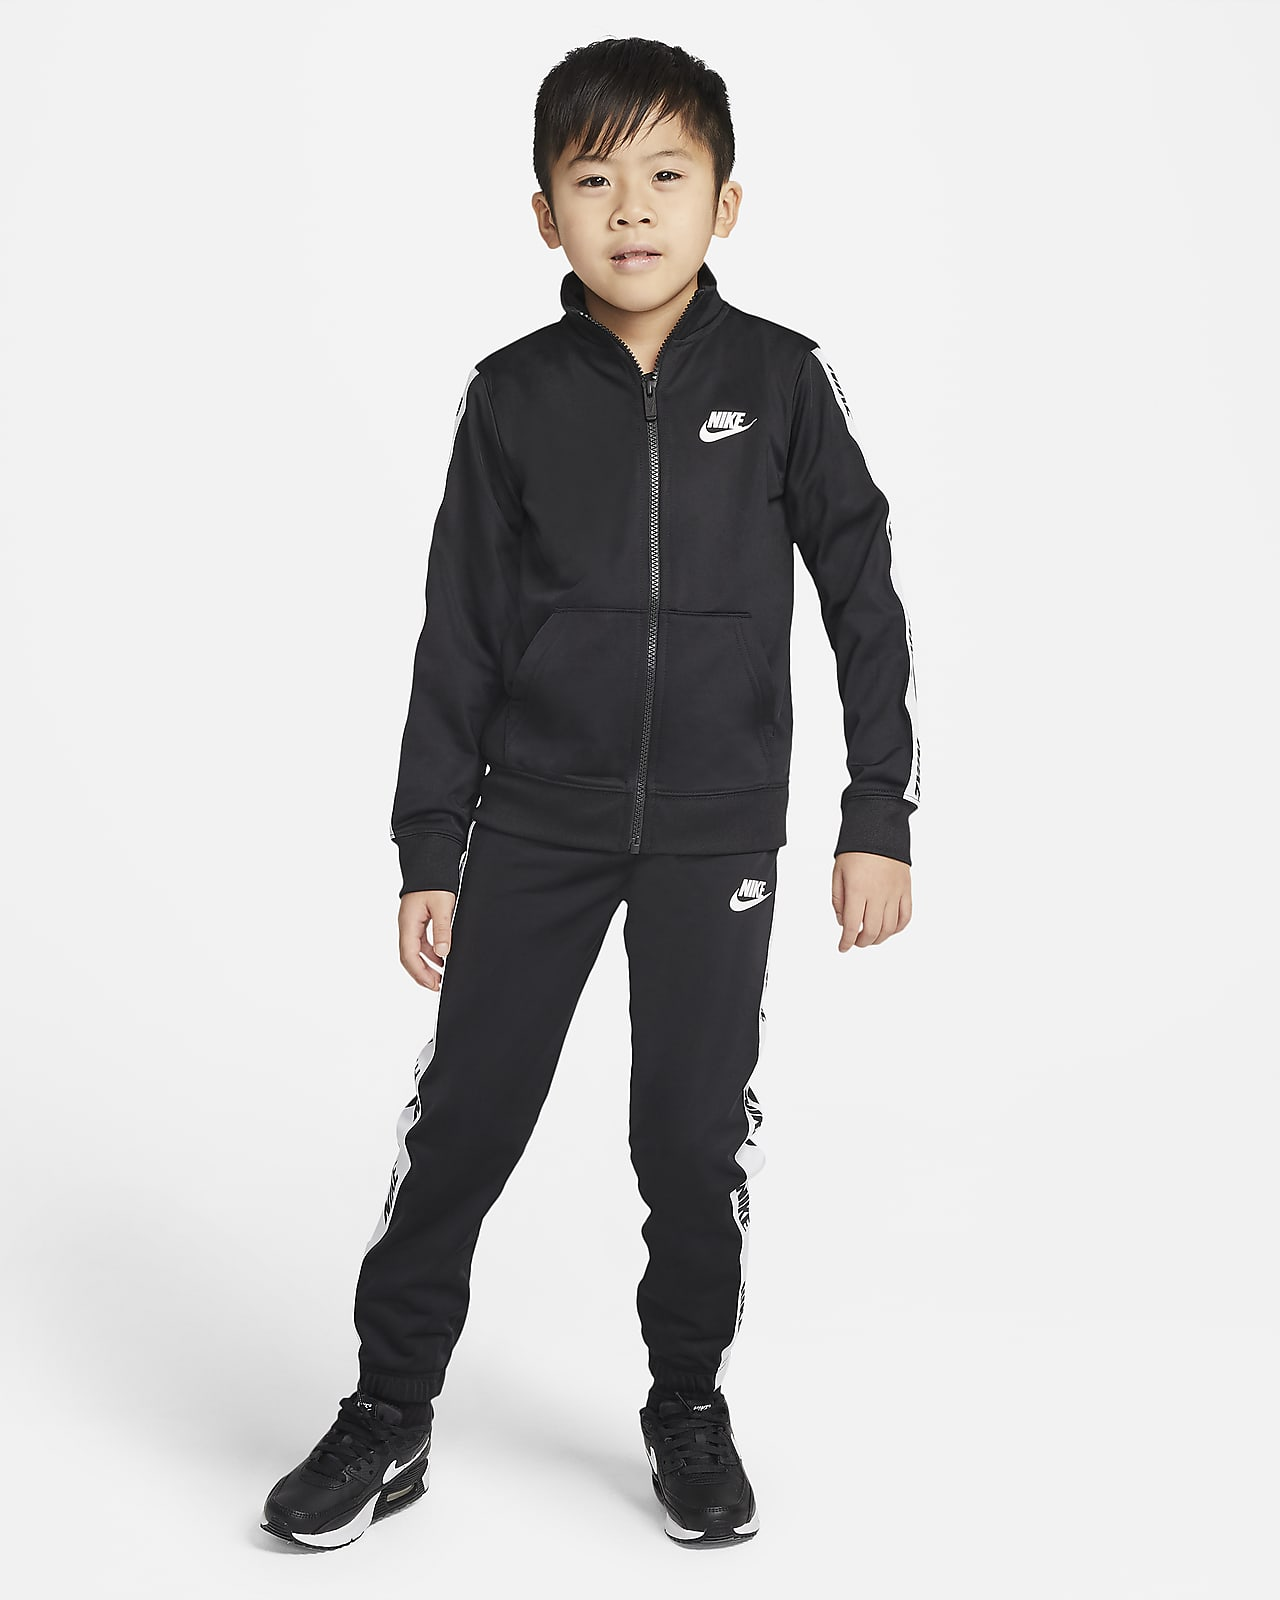 Nike Sportswear Little Kids' Jacket and Pants Set